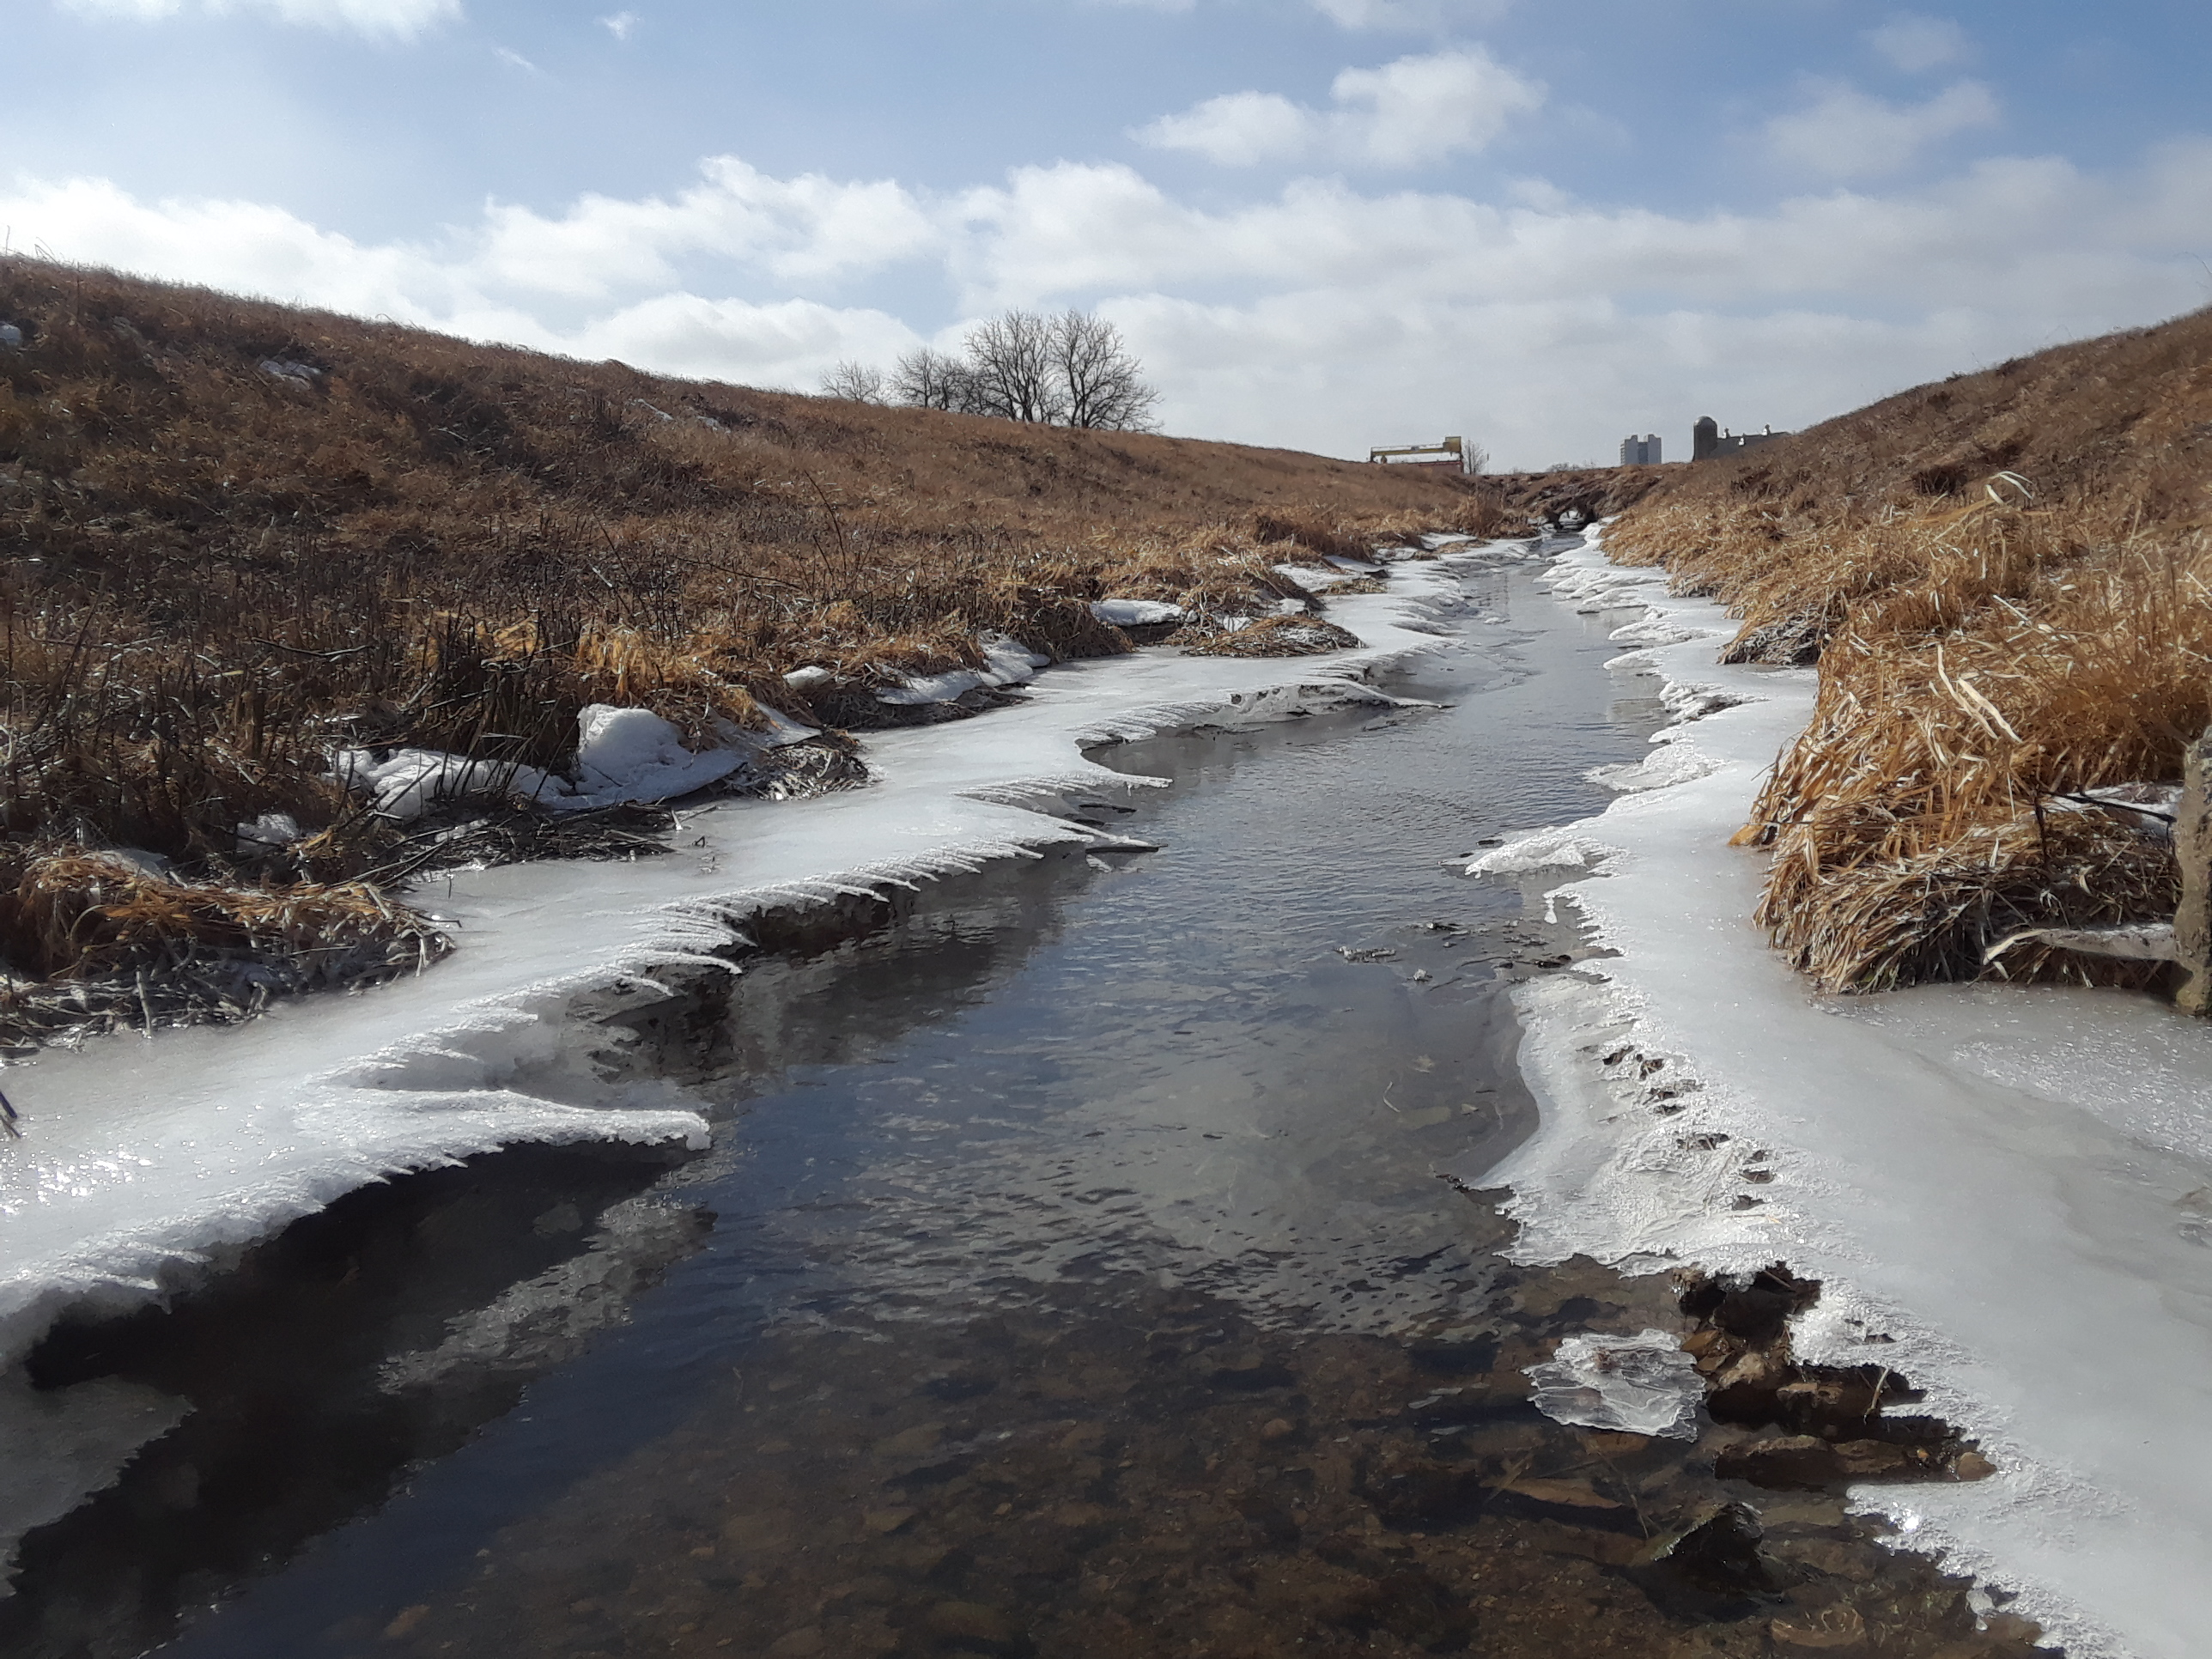 "(1/2) Ice shelves have formed in the Road C Creek, here seen from above. You can compare them to <a href=""http://news.fnal.gov/2018/02/ice-shelf/"">photos of the same creek taken on Dec. 8, 2017</a>. nature, landscape, water, winter, snow, ice, creek, sky Photo: Luciano Elementi"